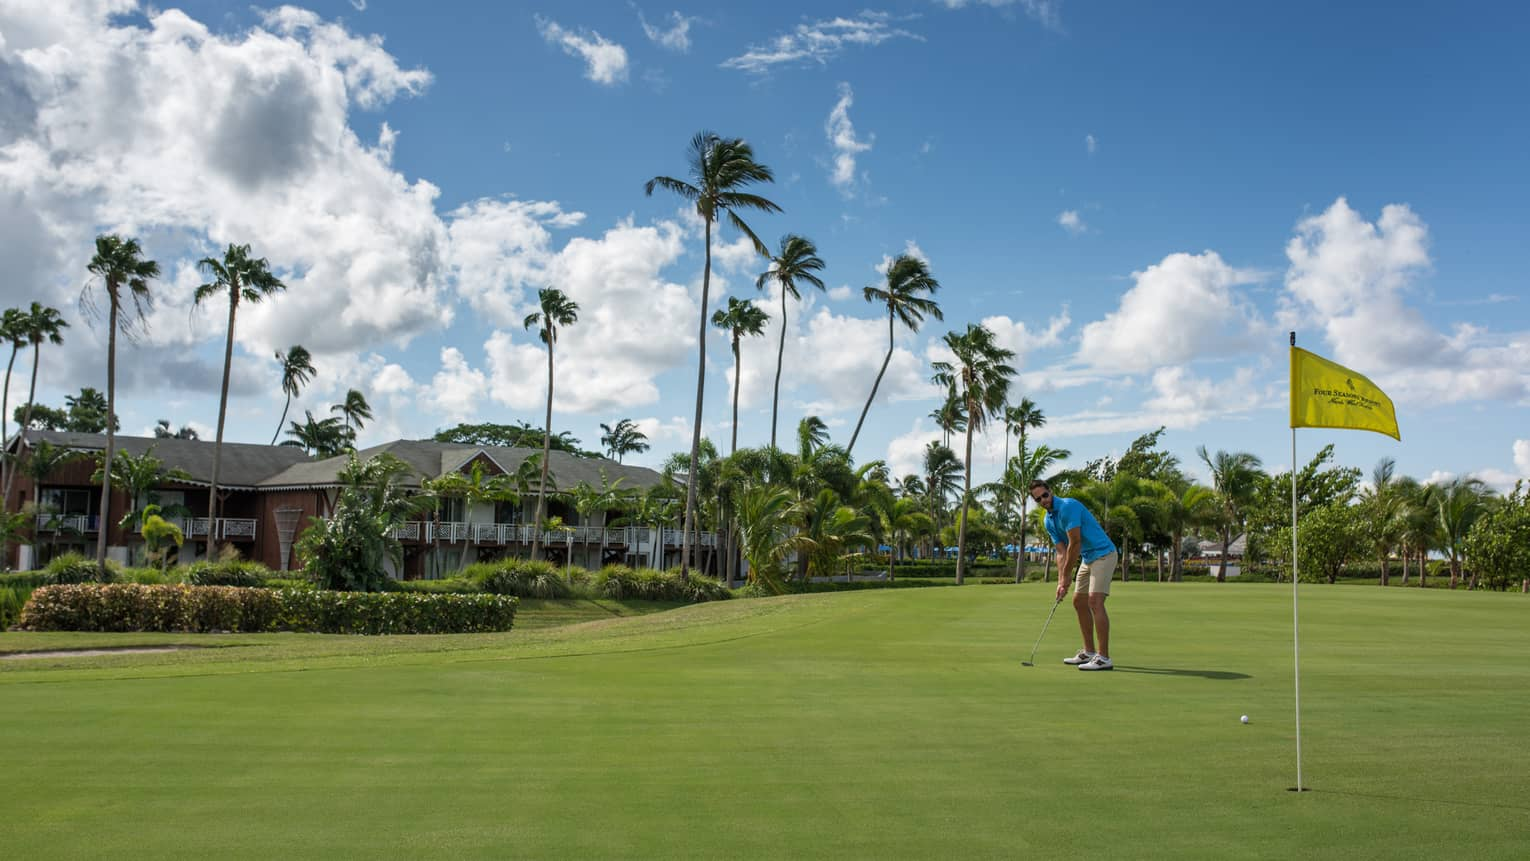 Golfer puts ball toward yellow flag on golf course green, tall palm trees